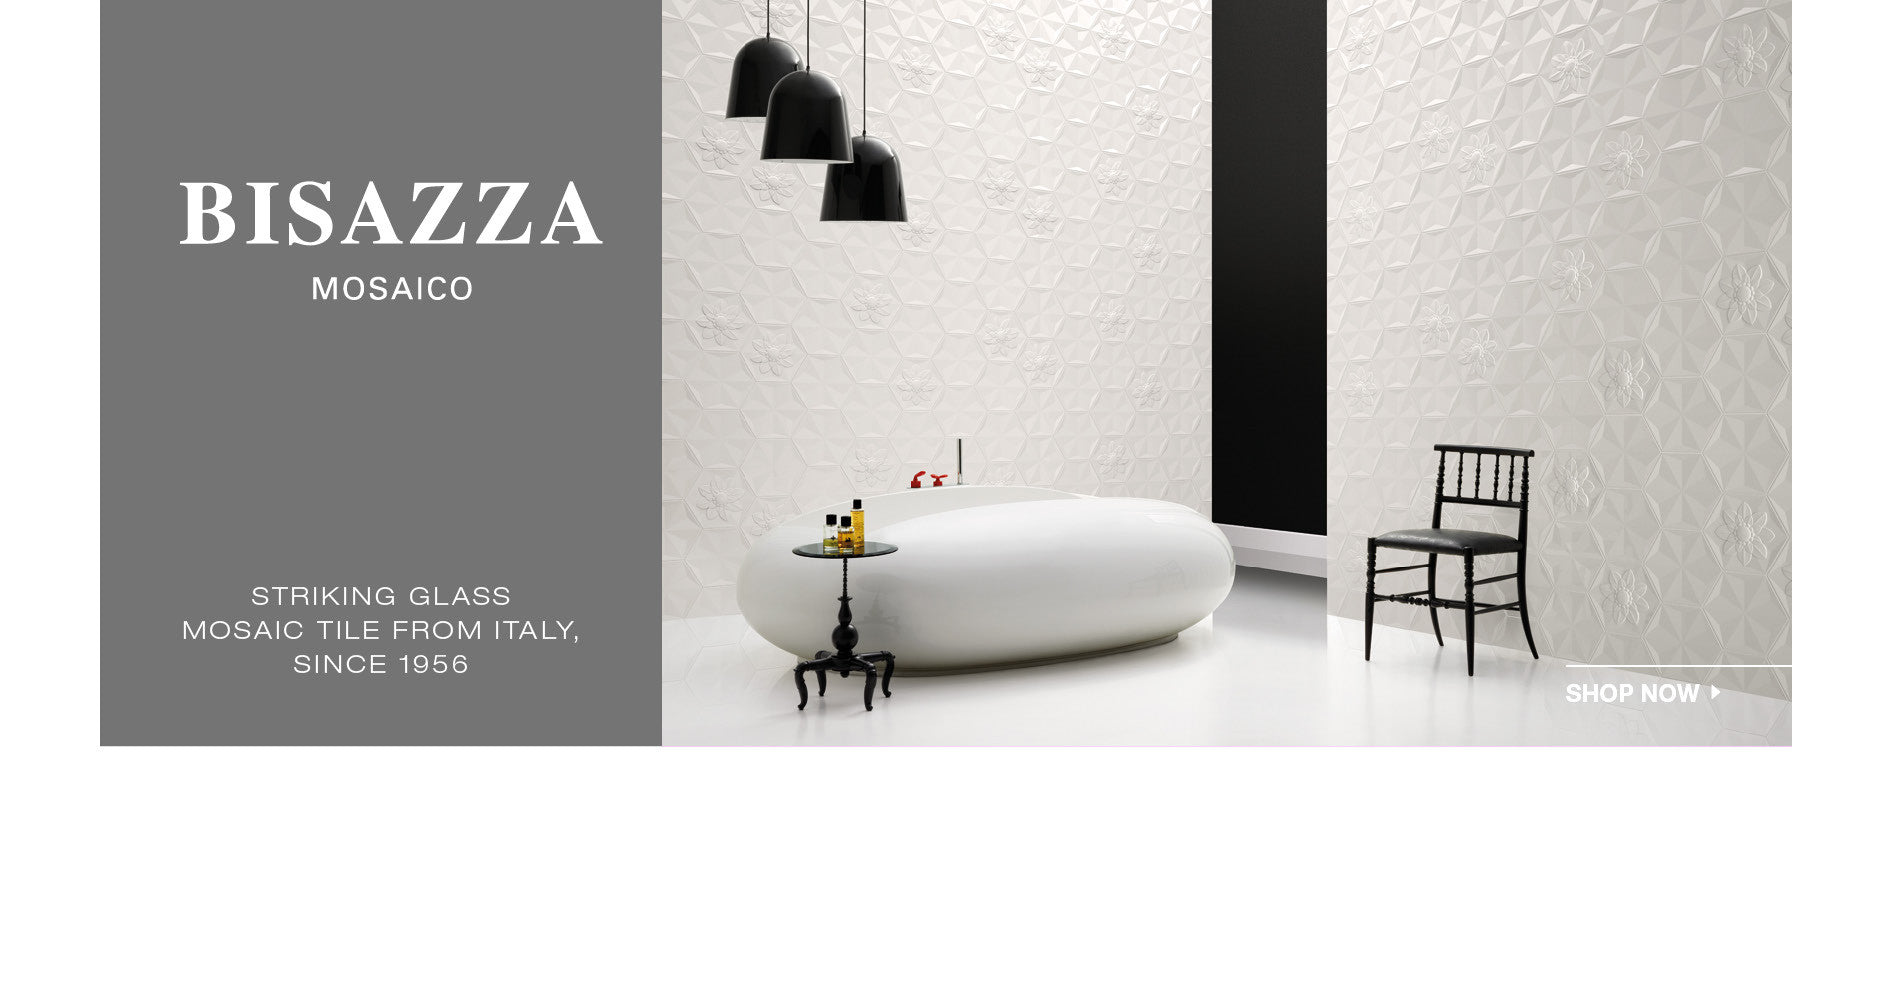 Bisazza specializes in luxury glass mosaic tile